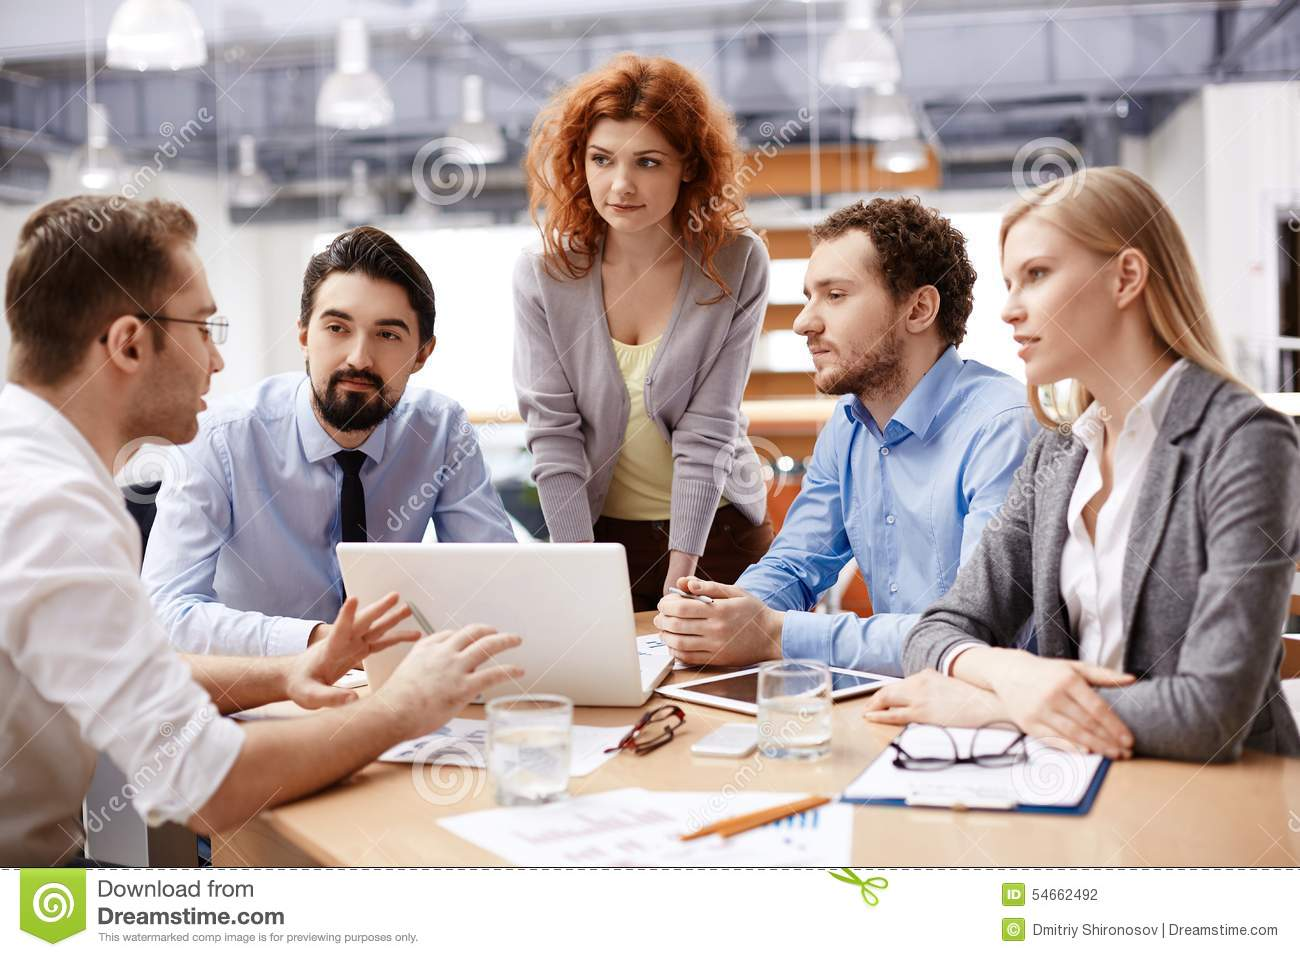 Stock Fotos E Imágenes: Business Meeting Stock Photo